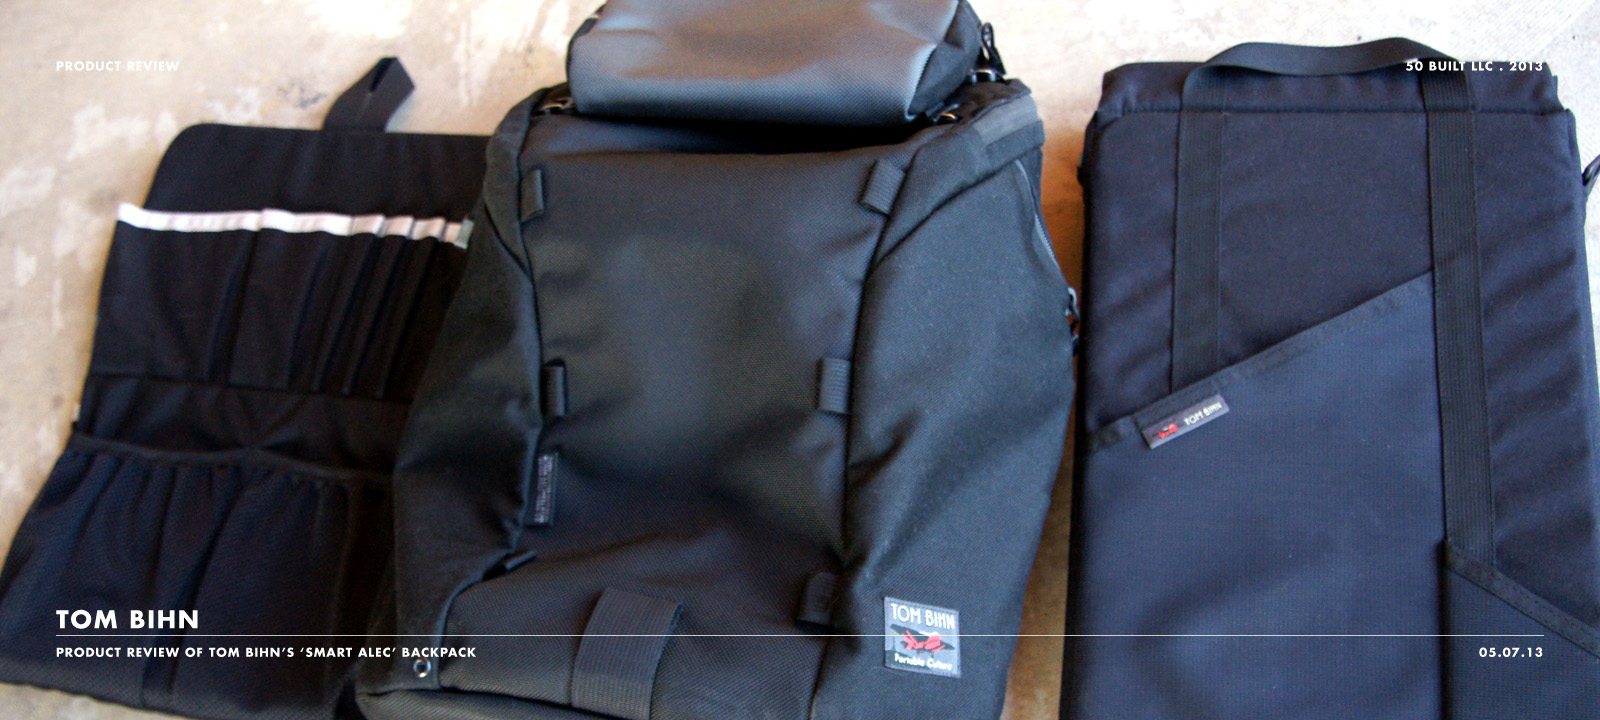 Tom Bihn Smart Alec Bag 50 Built